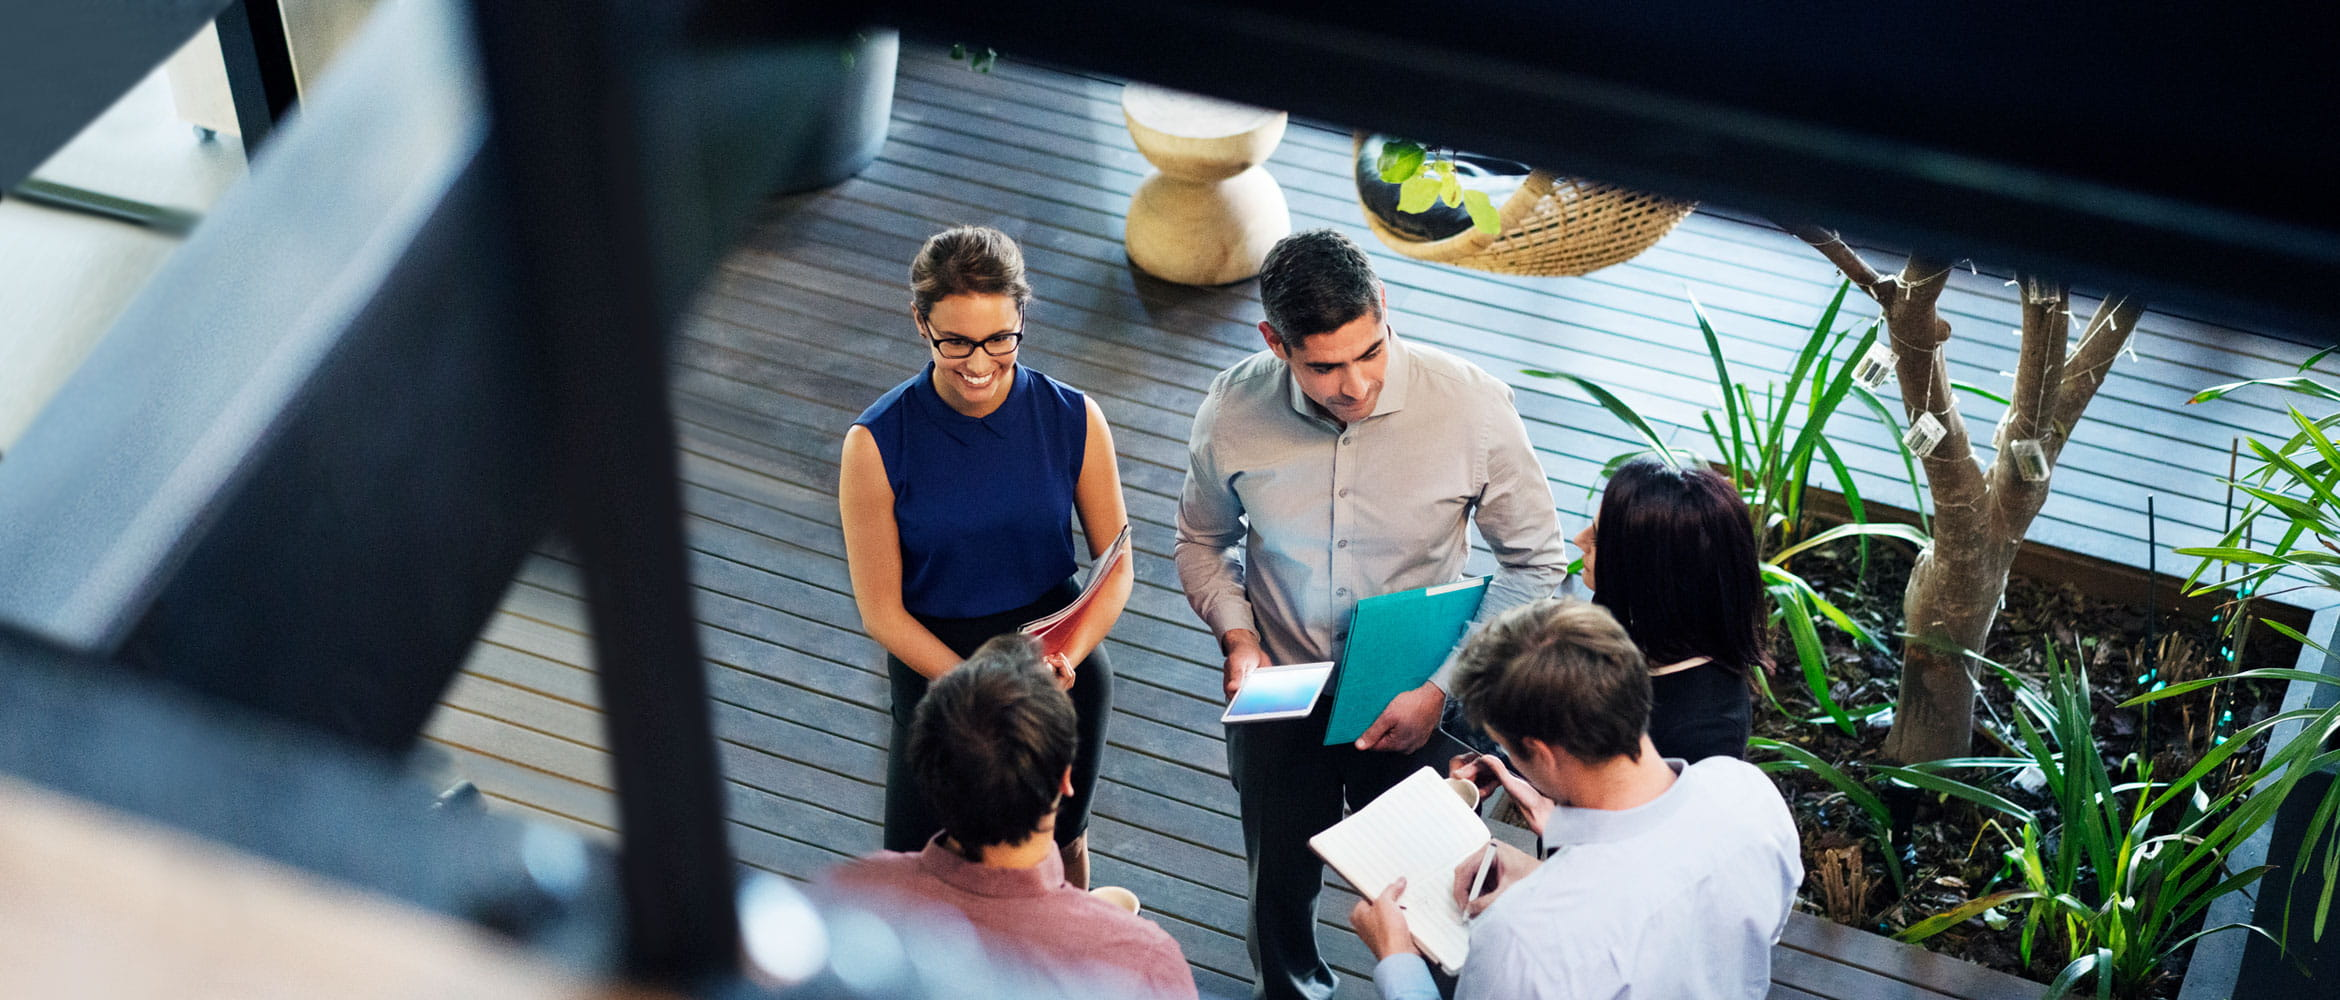 Five employees (two female and three male) in the workplace of the future are holding an informal stand-up business meeting in the office. The scene is pictured from overhead. The team if co-workers are holding files, notepads and tablet computers as they collaborate.